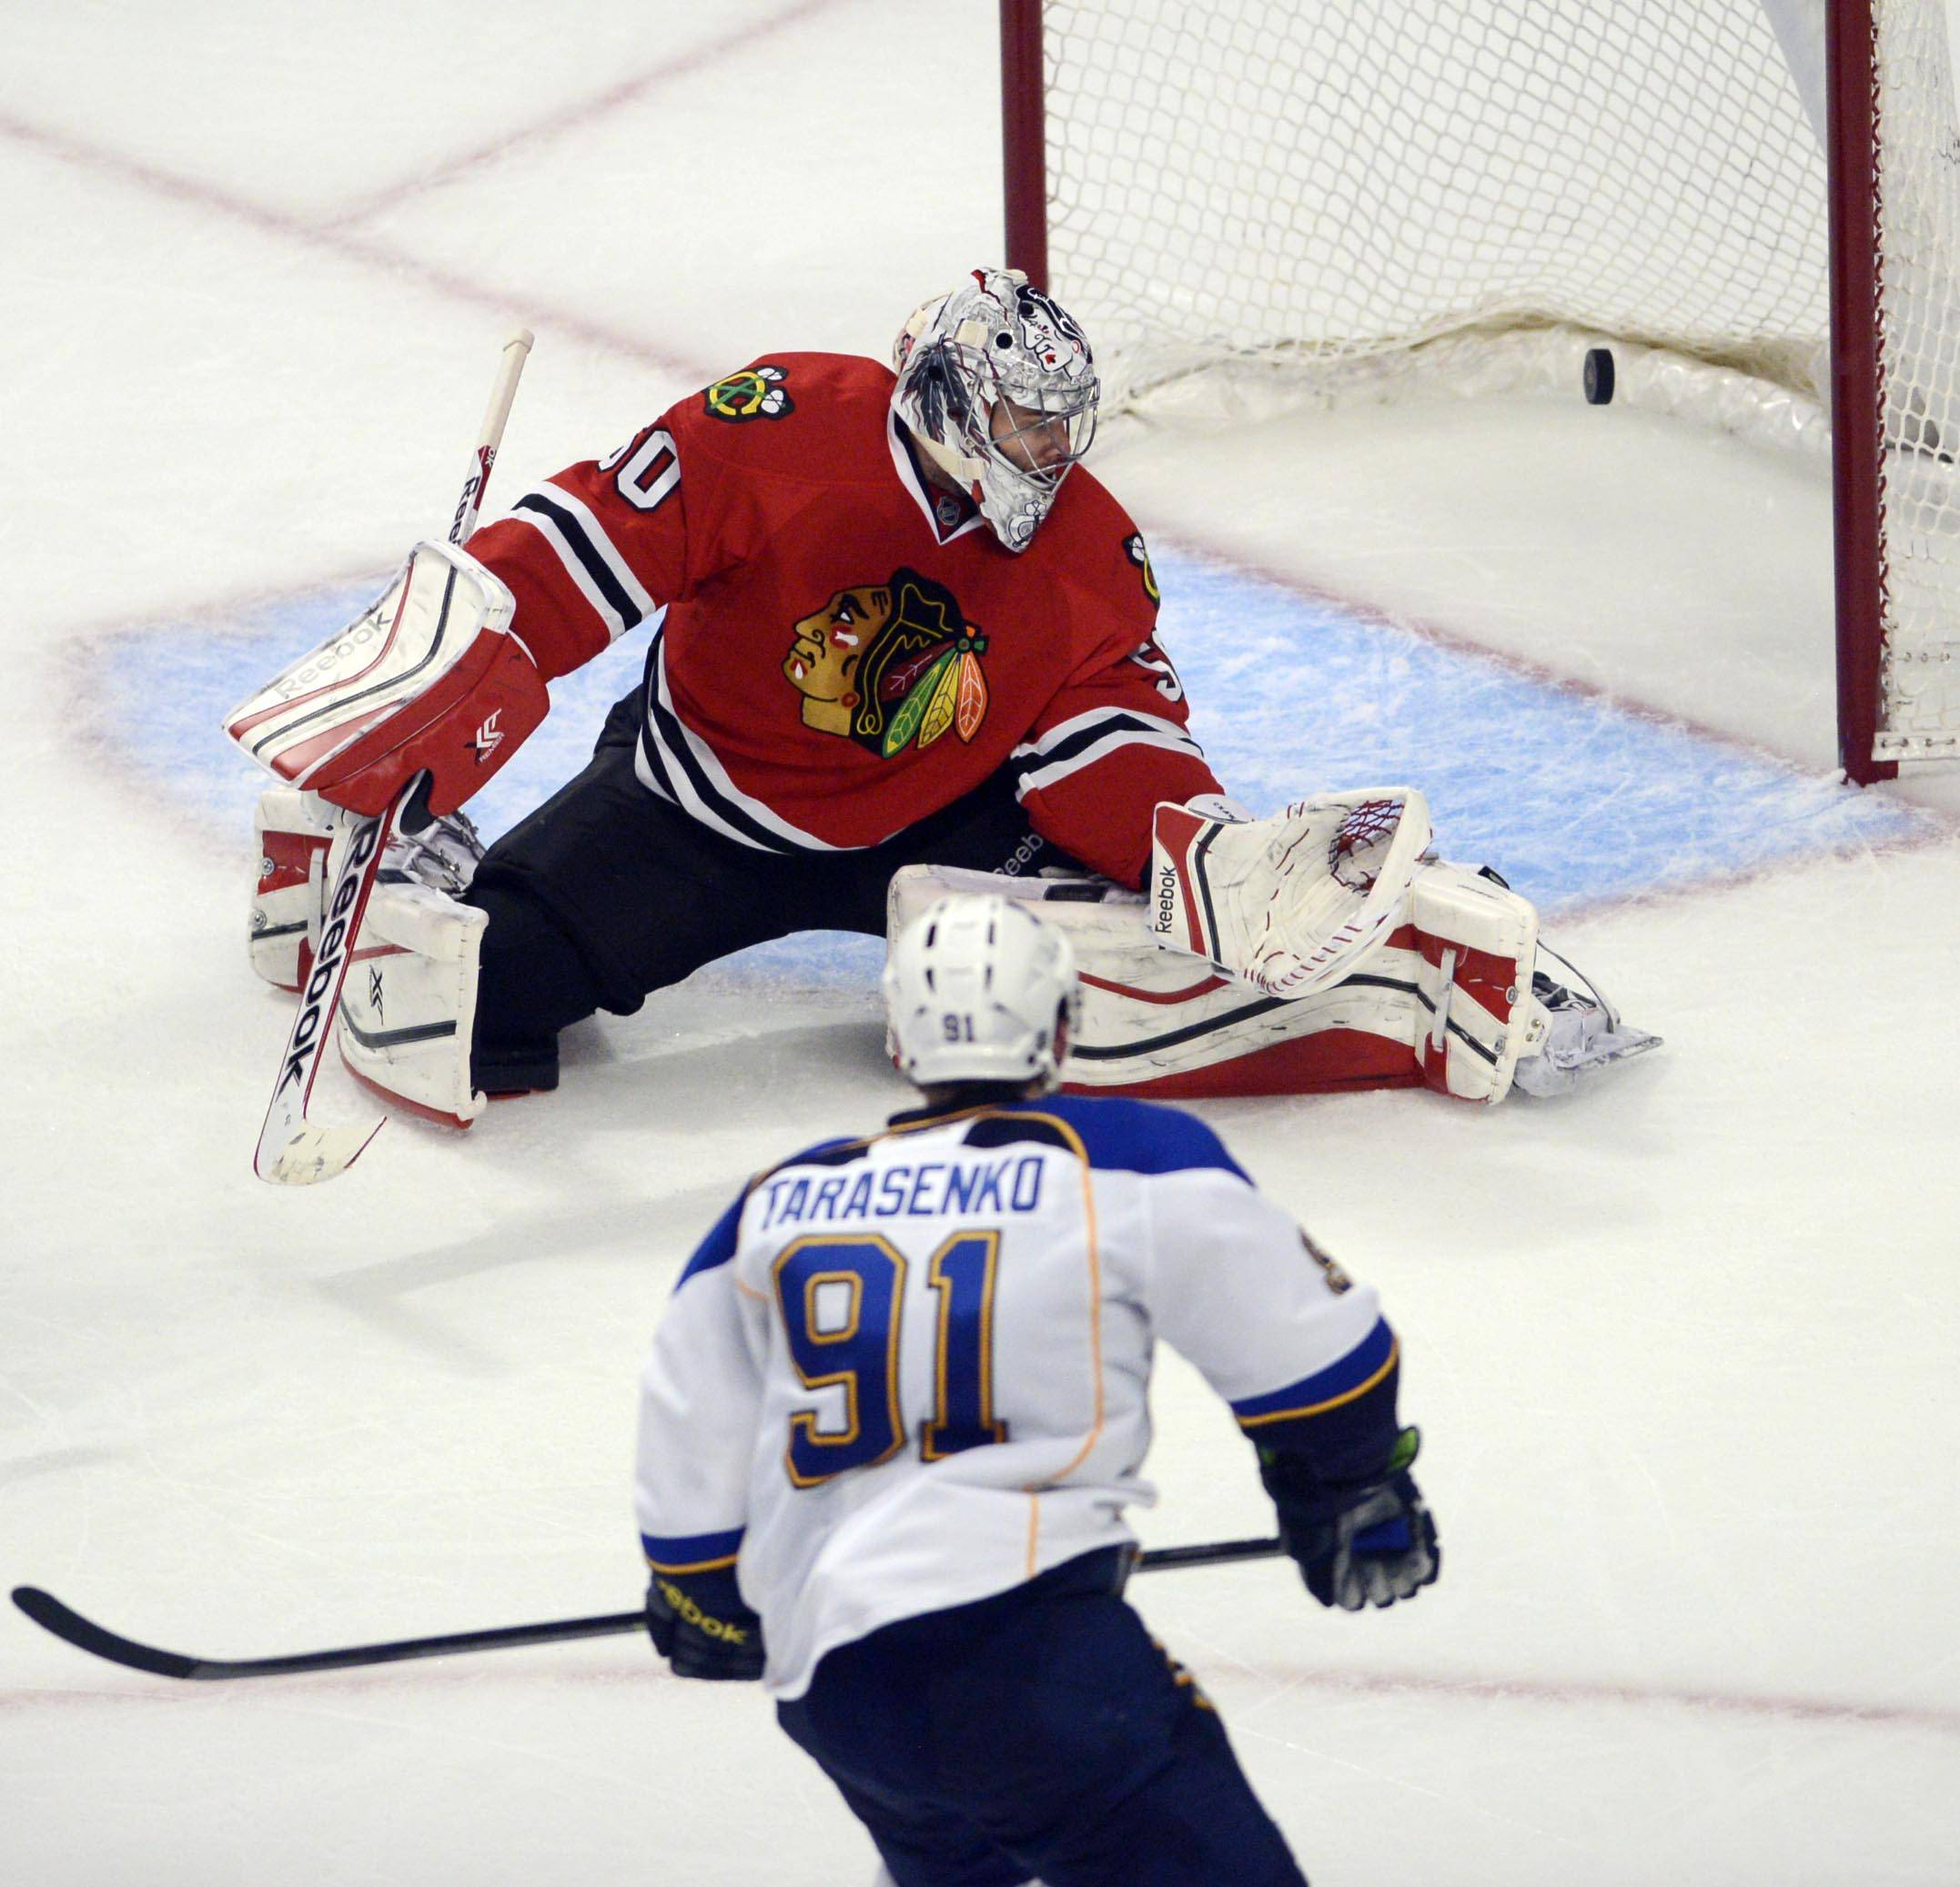 St. Louis Blues right wing Vladimir Tarasenko scores the go-ahead goal in the third period past Chicago Blackhawks goalie Corey Crawford  .